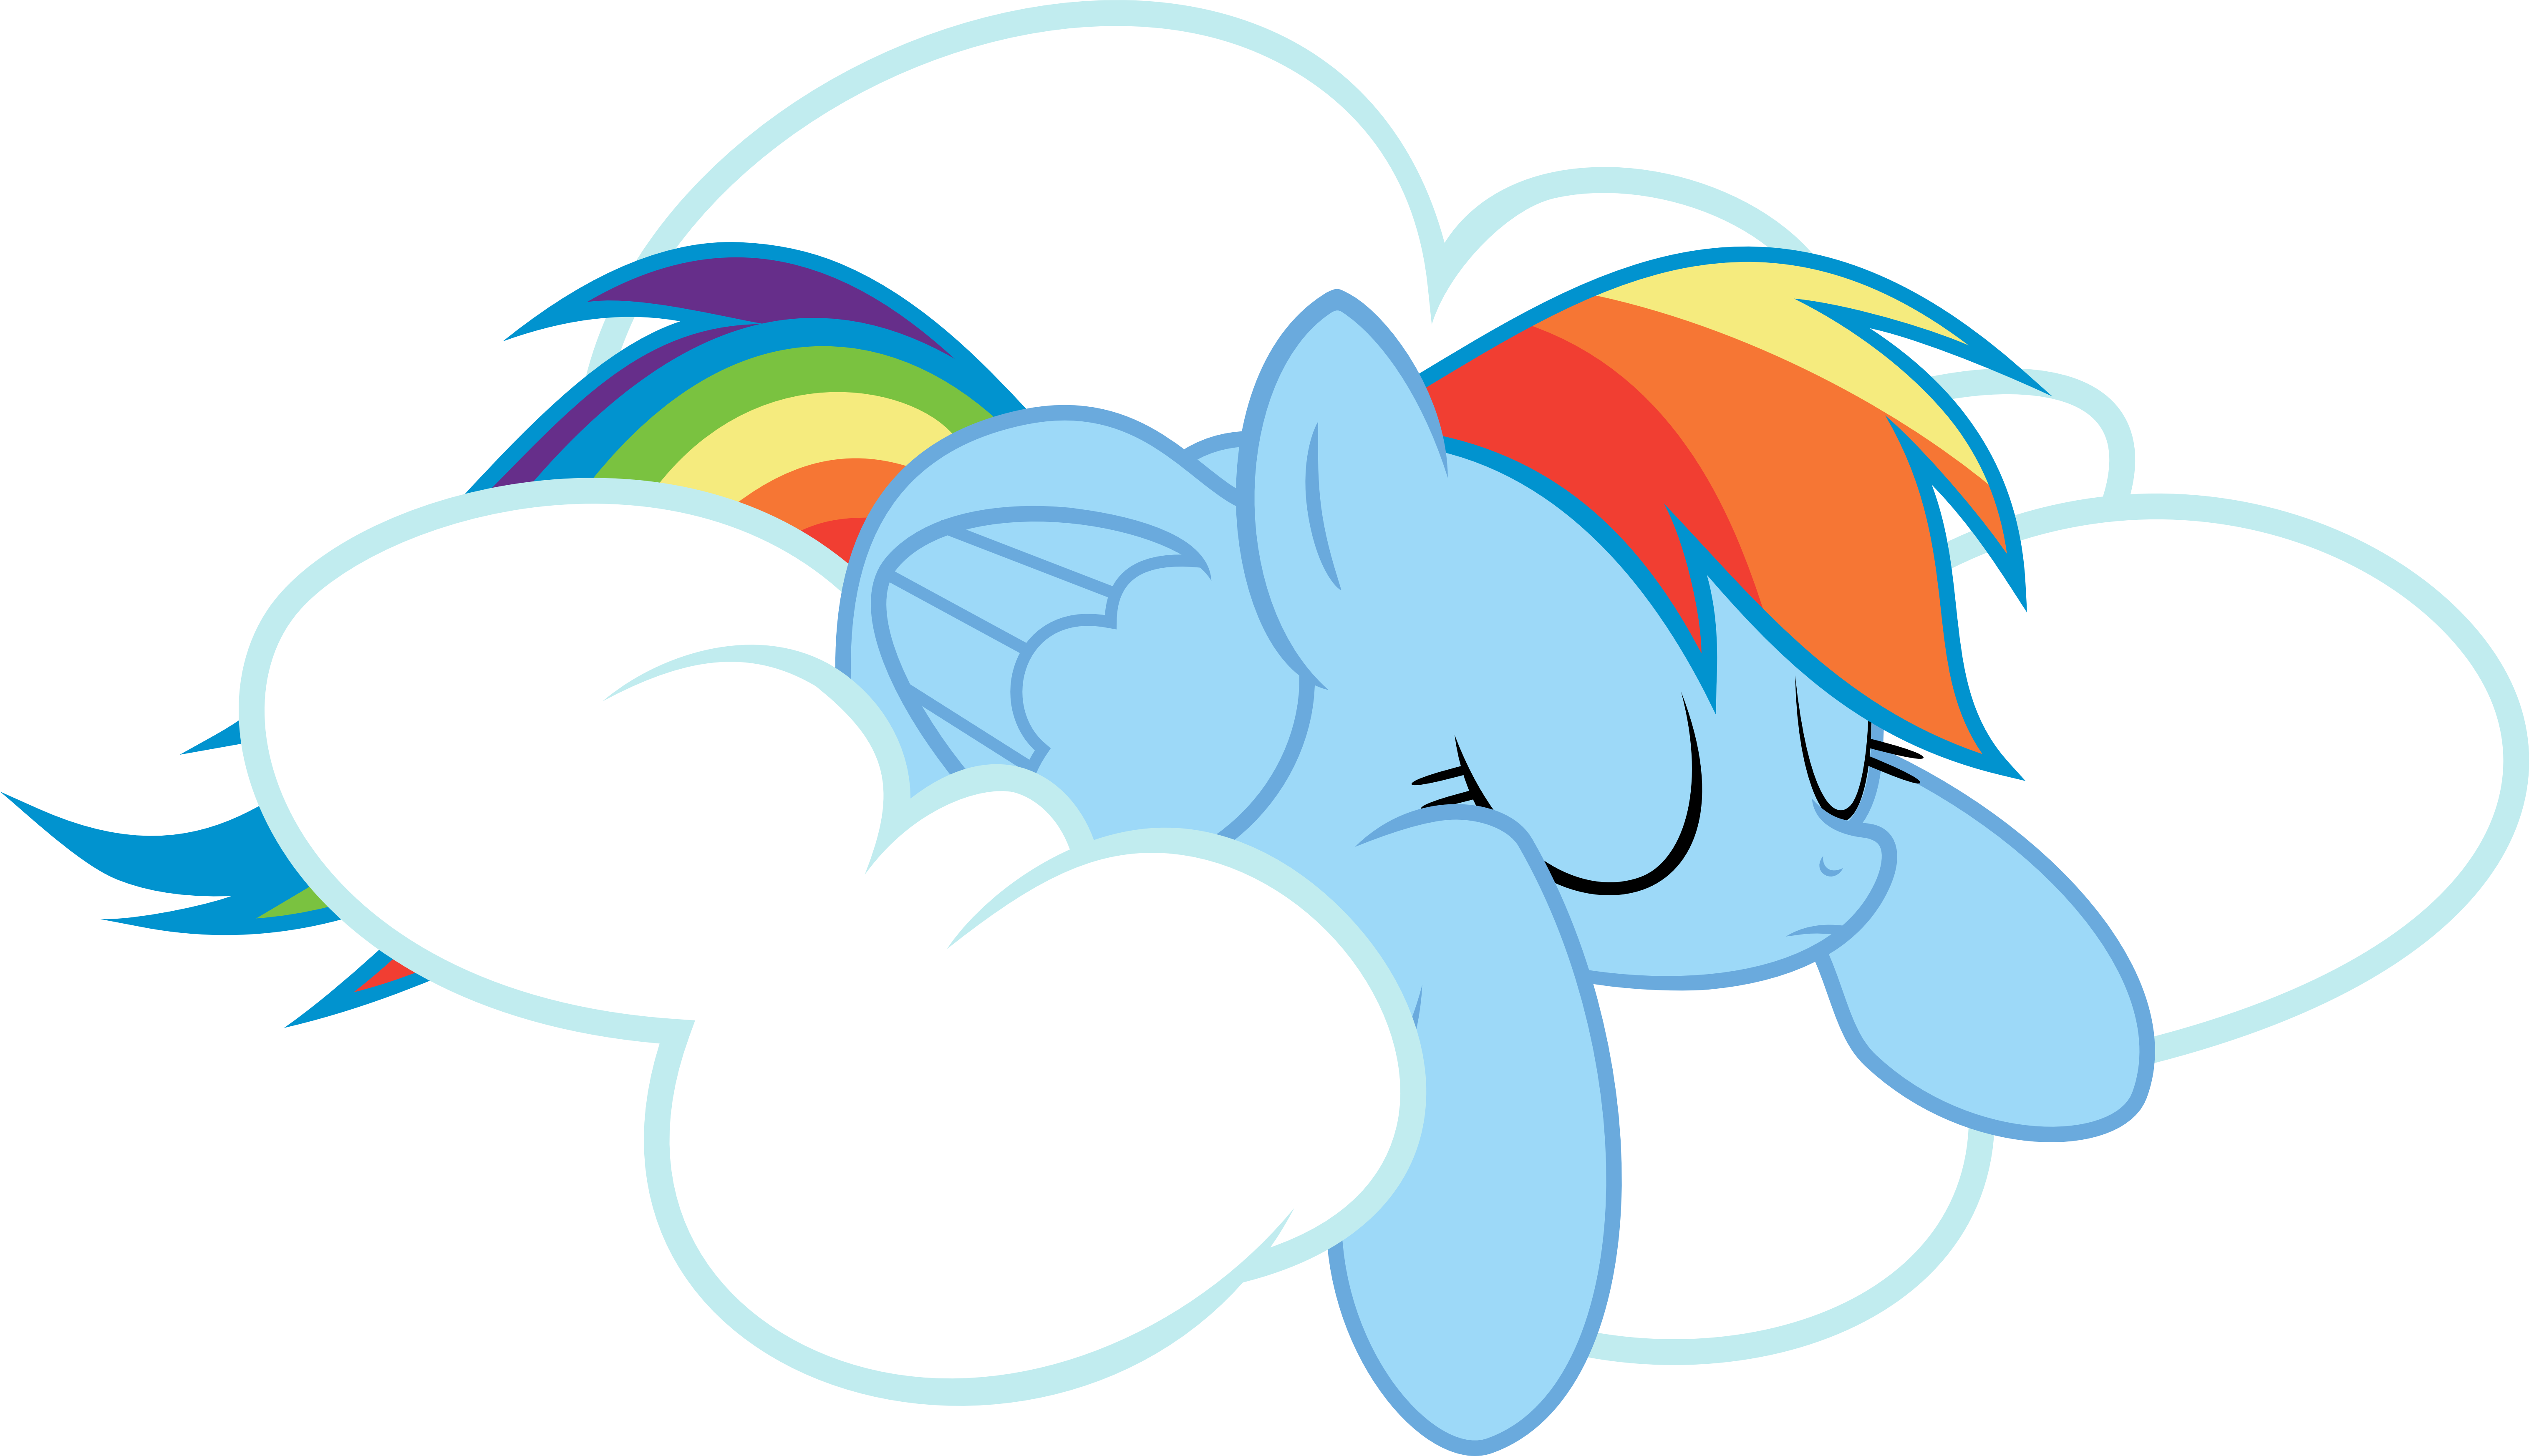 mlp rainbow dash cloud vector images galleries with a bite. Black Bedroom Furniture Sets. Home Design Ideas